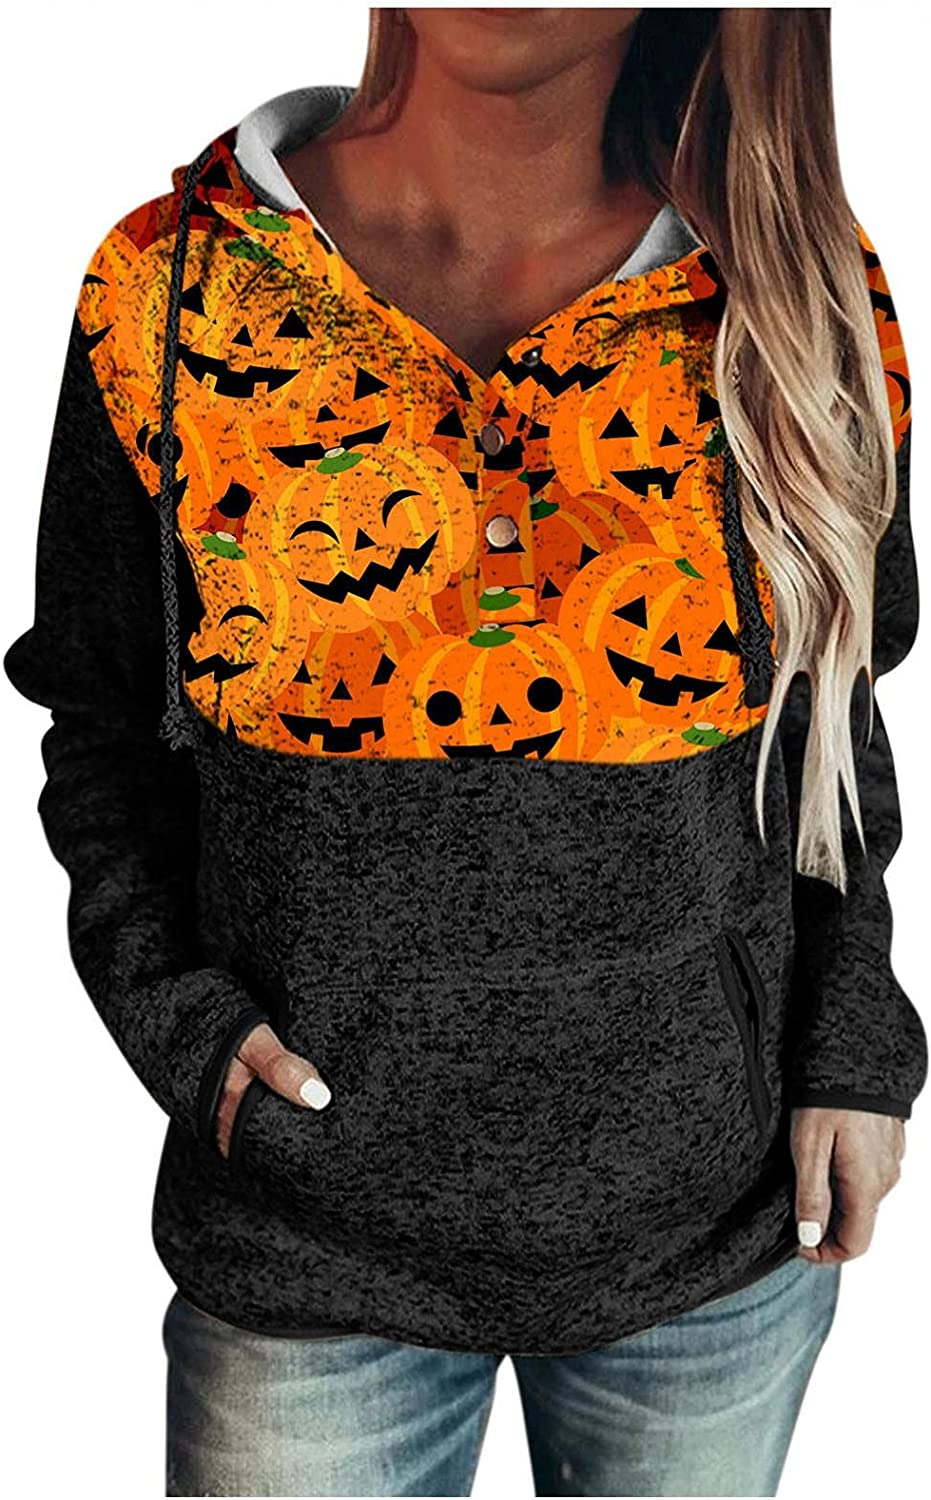 UOCUFY Hoodies for Women, Womens Halloween Hoodies Button Down Pullover with Pockets Casual Long Sleeve Sweatshirts